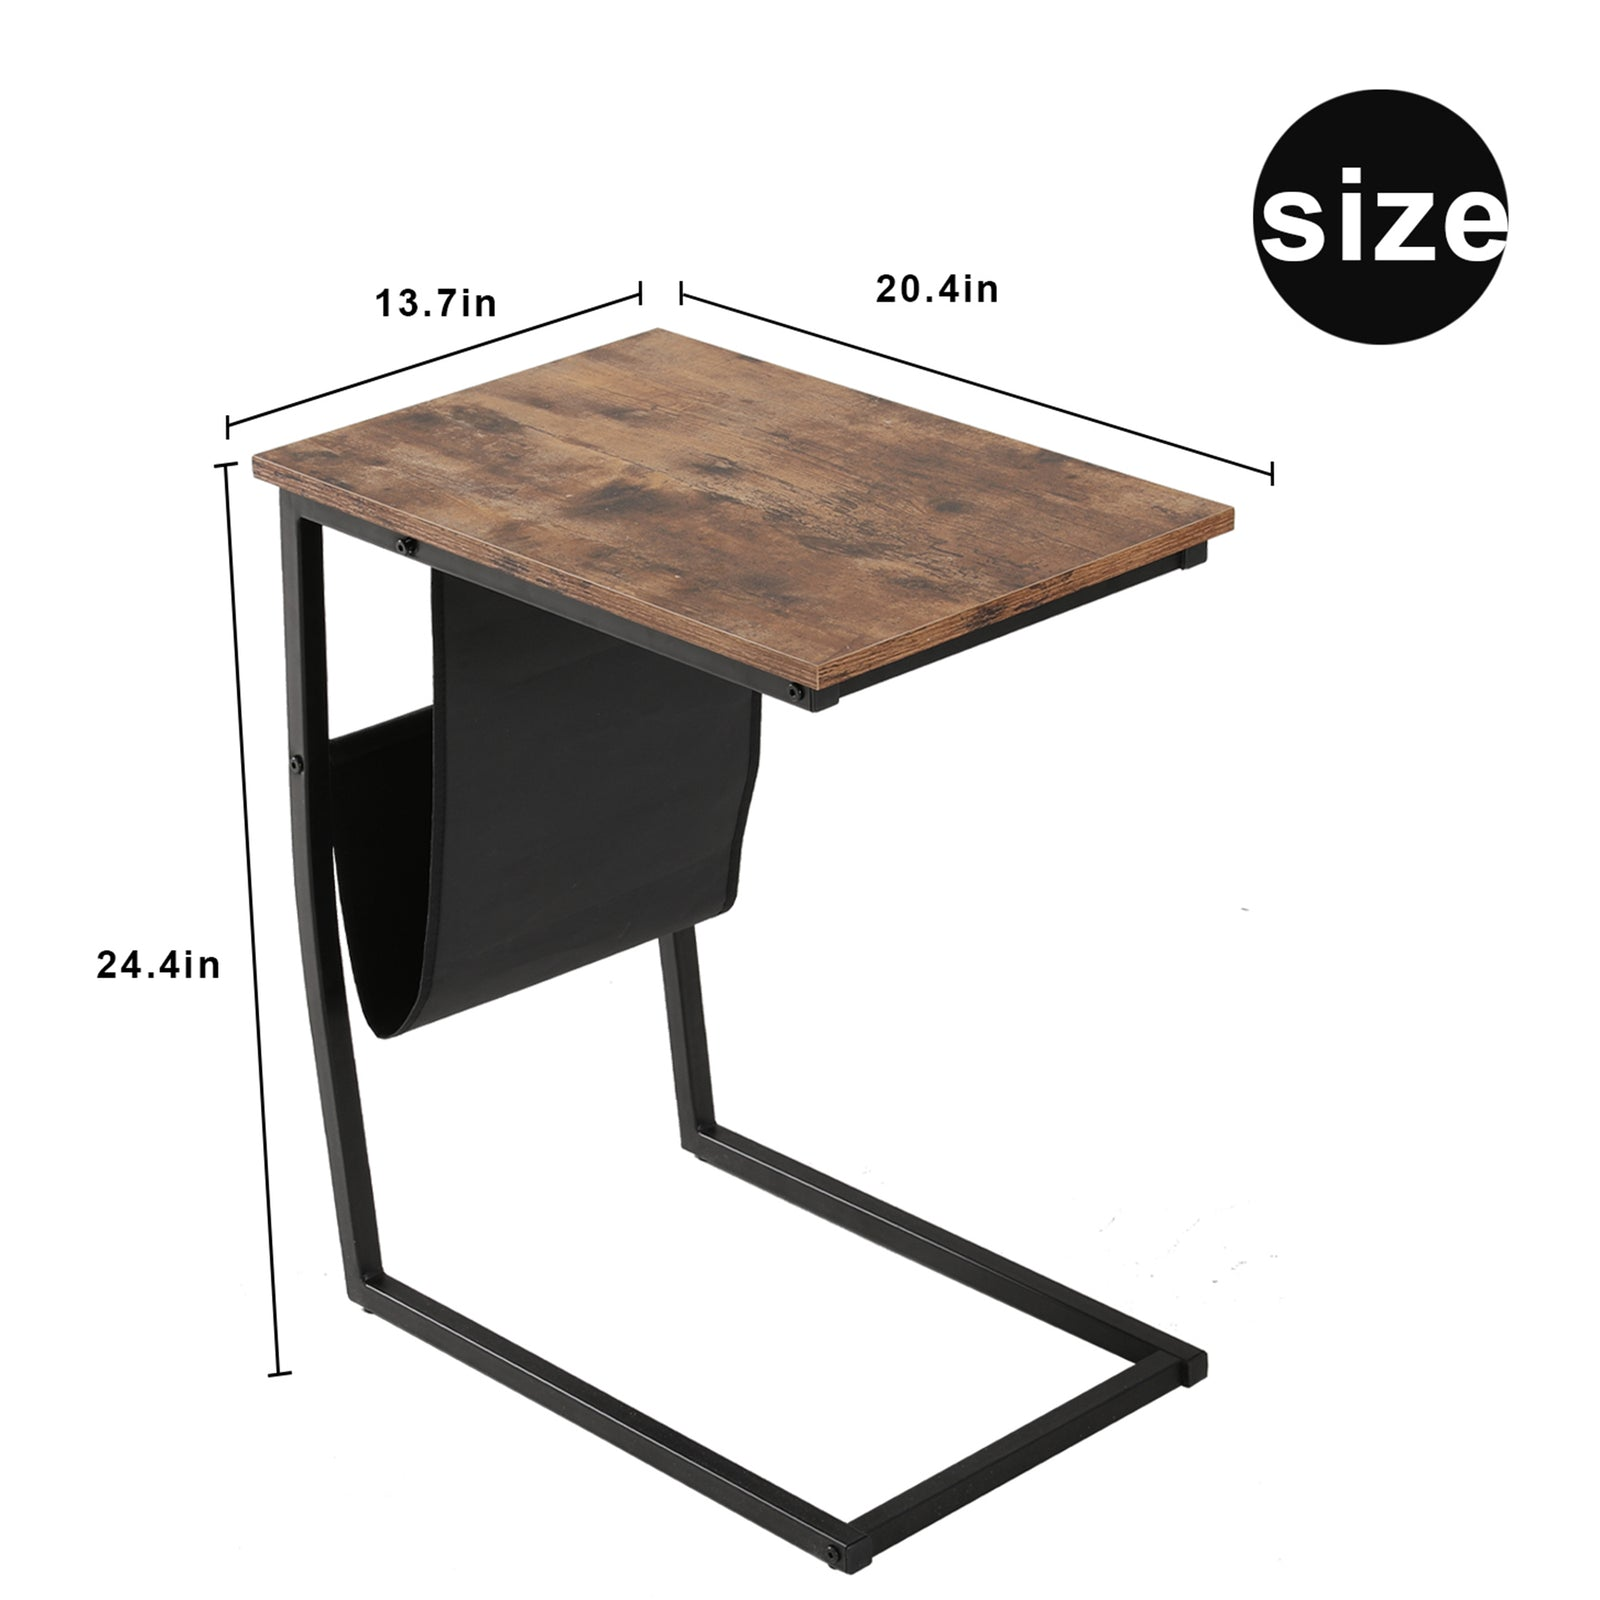 Dim Gray Industrial Side Table With Metal Frame Mobile Snack Table for Coffee Laptop Tablet BH50124965